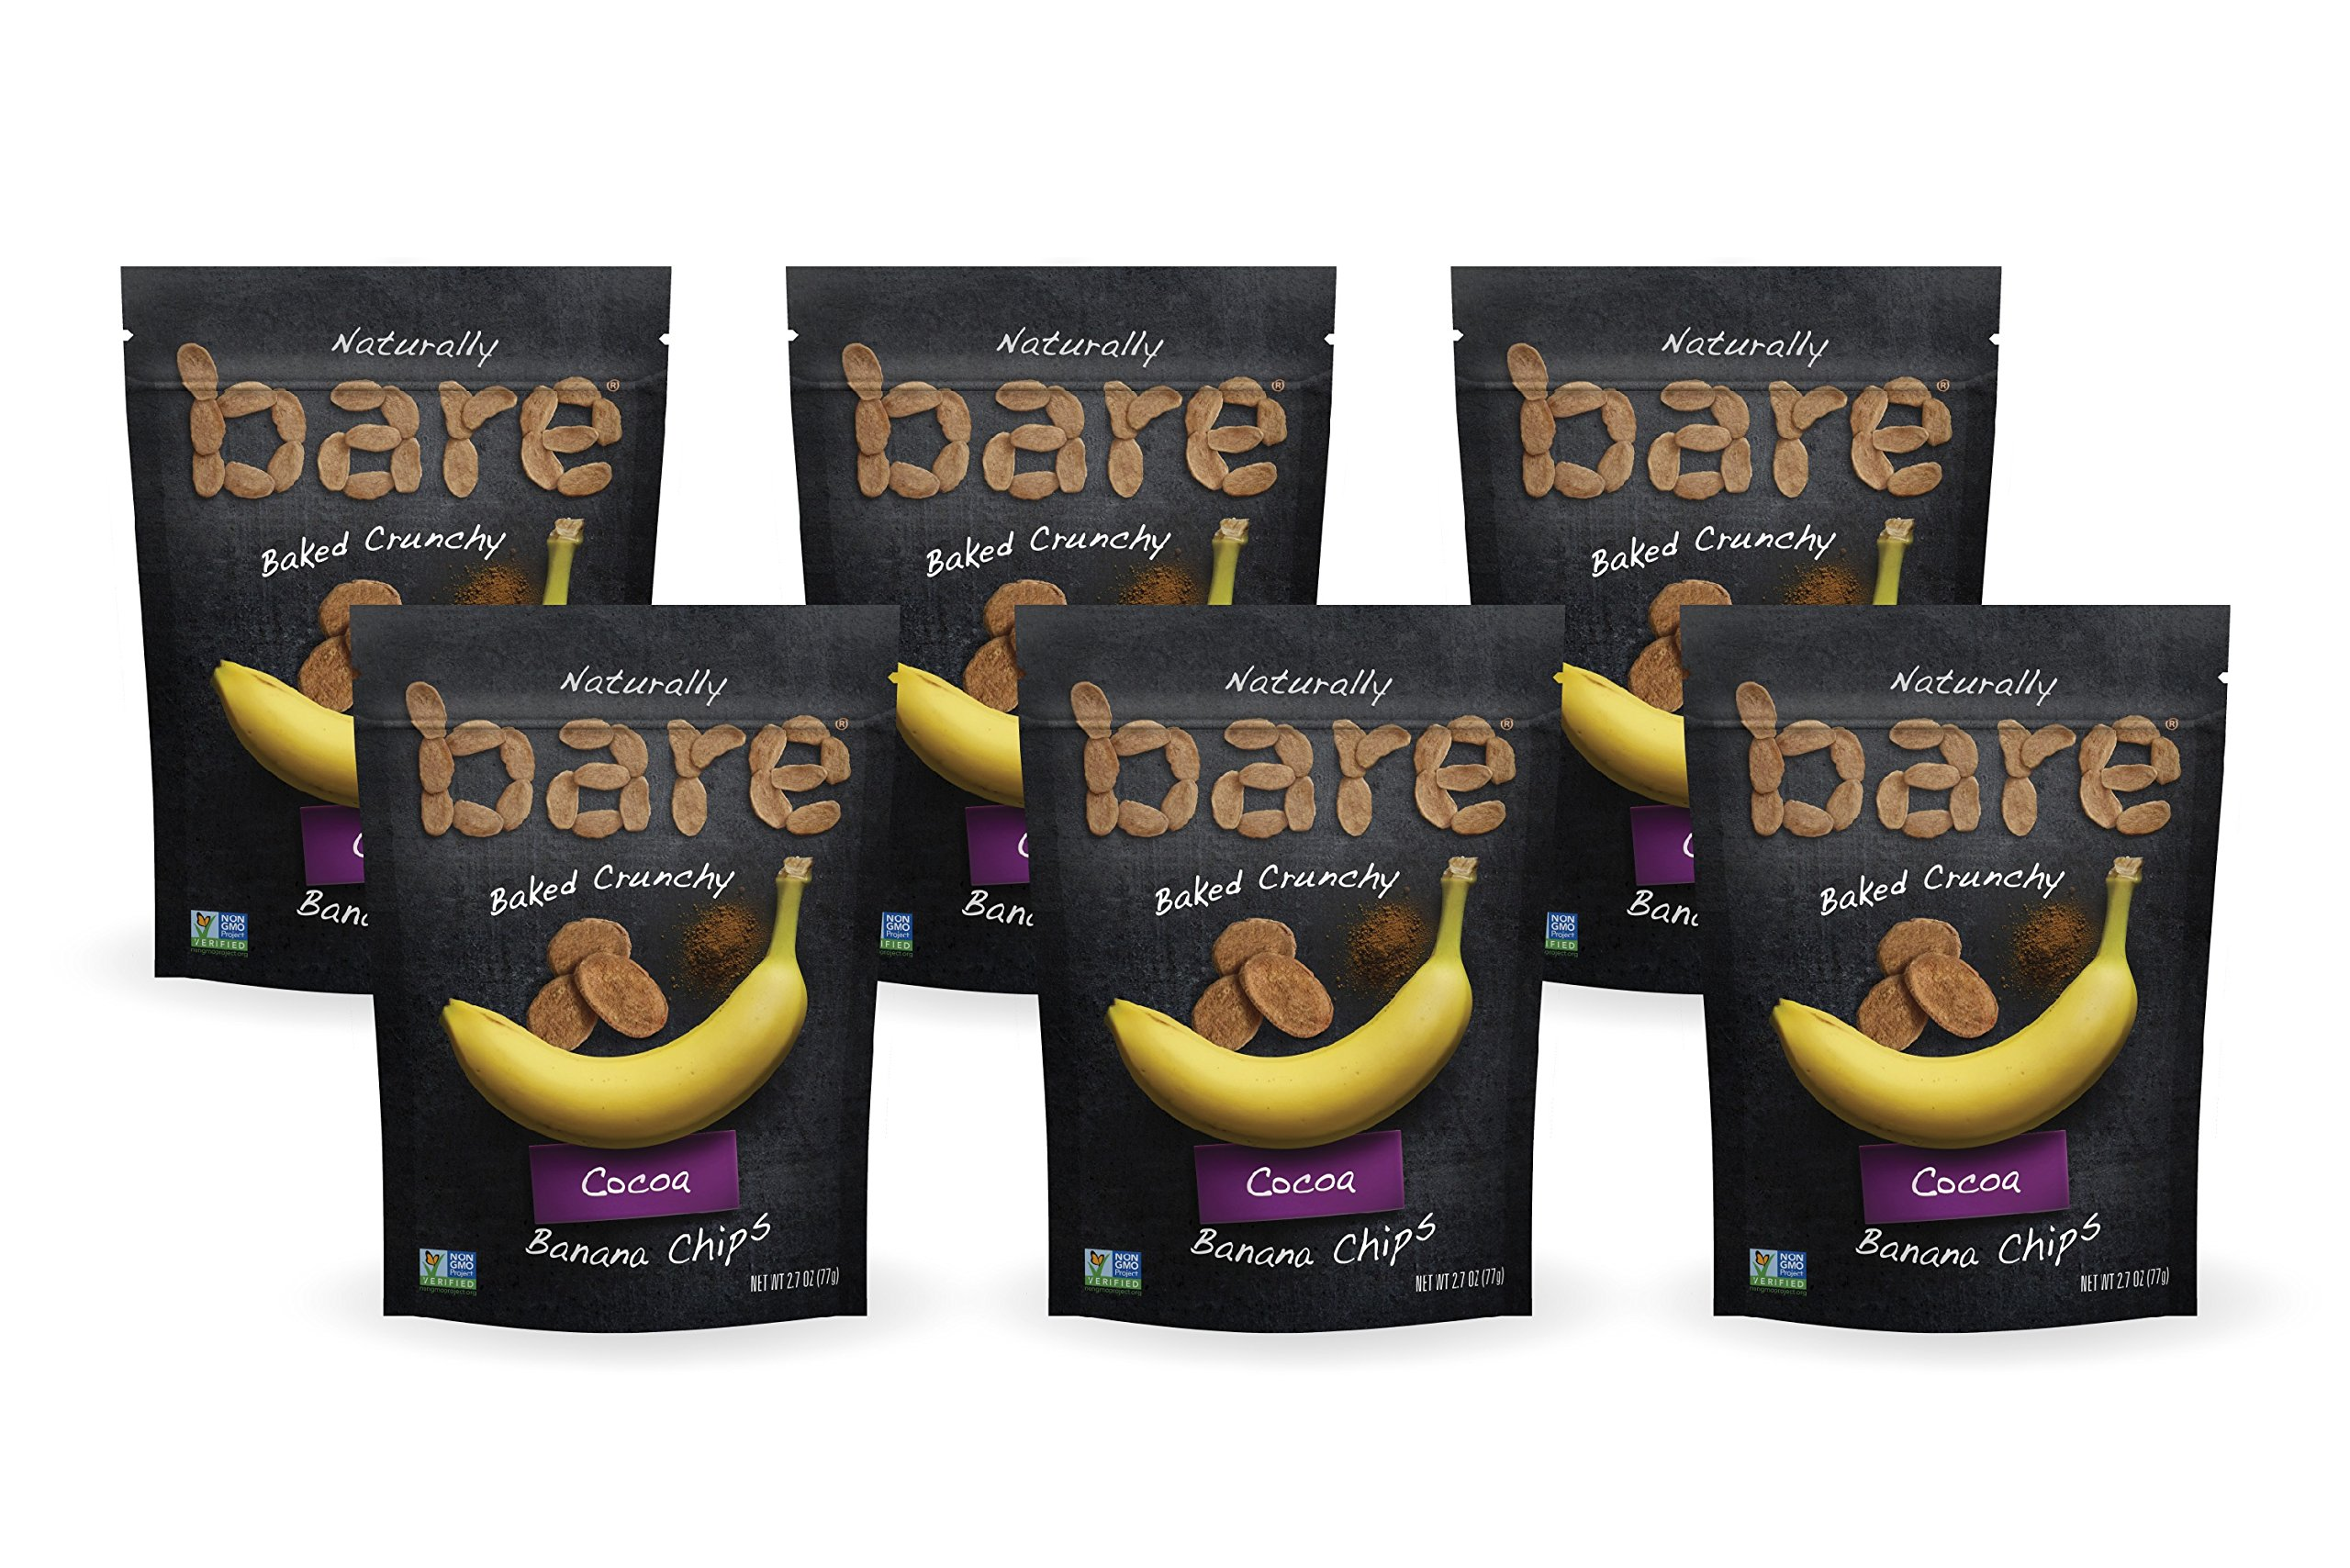 Bare Natural Banana Chips, Cocoa, Gluten Free + Baked, Multi Serve Bag - 2.7 Oz (6 Count)